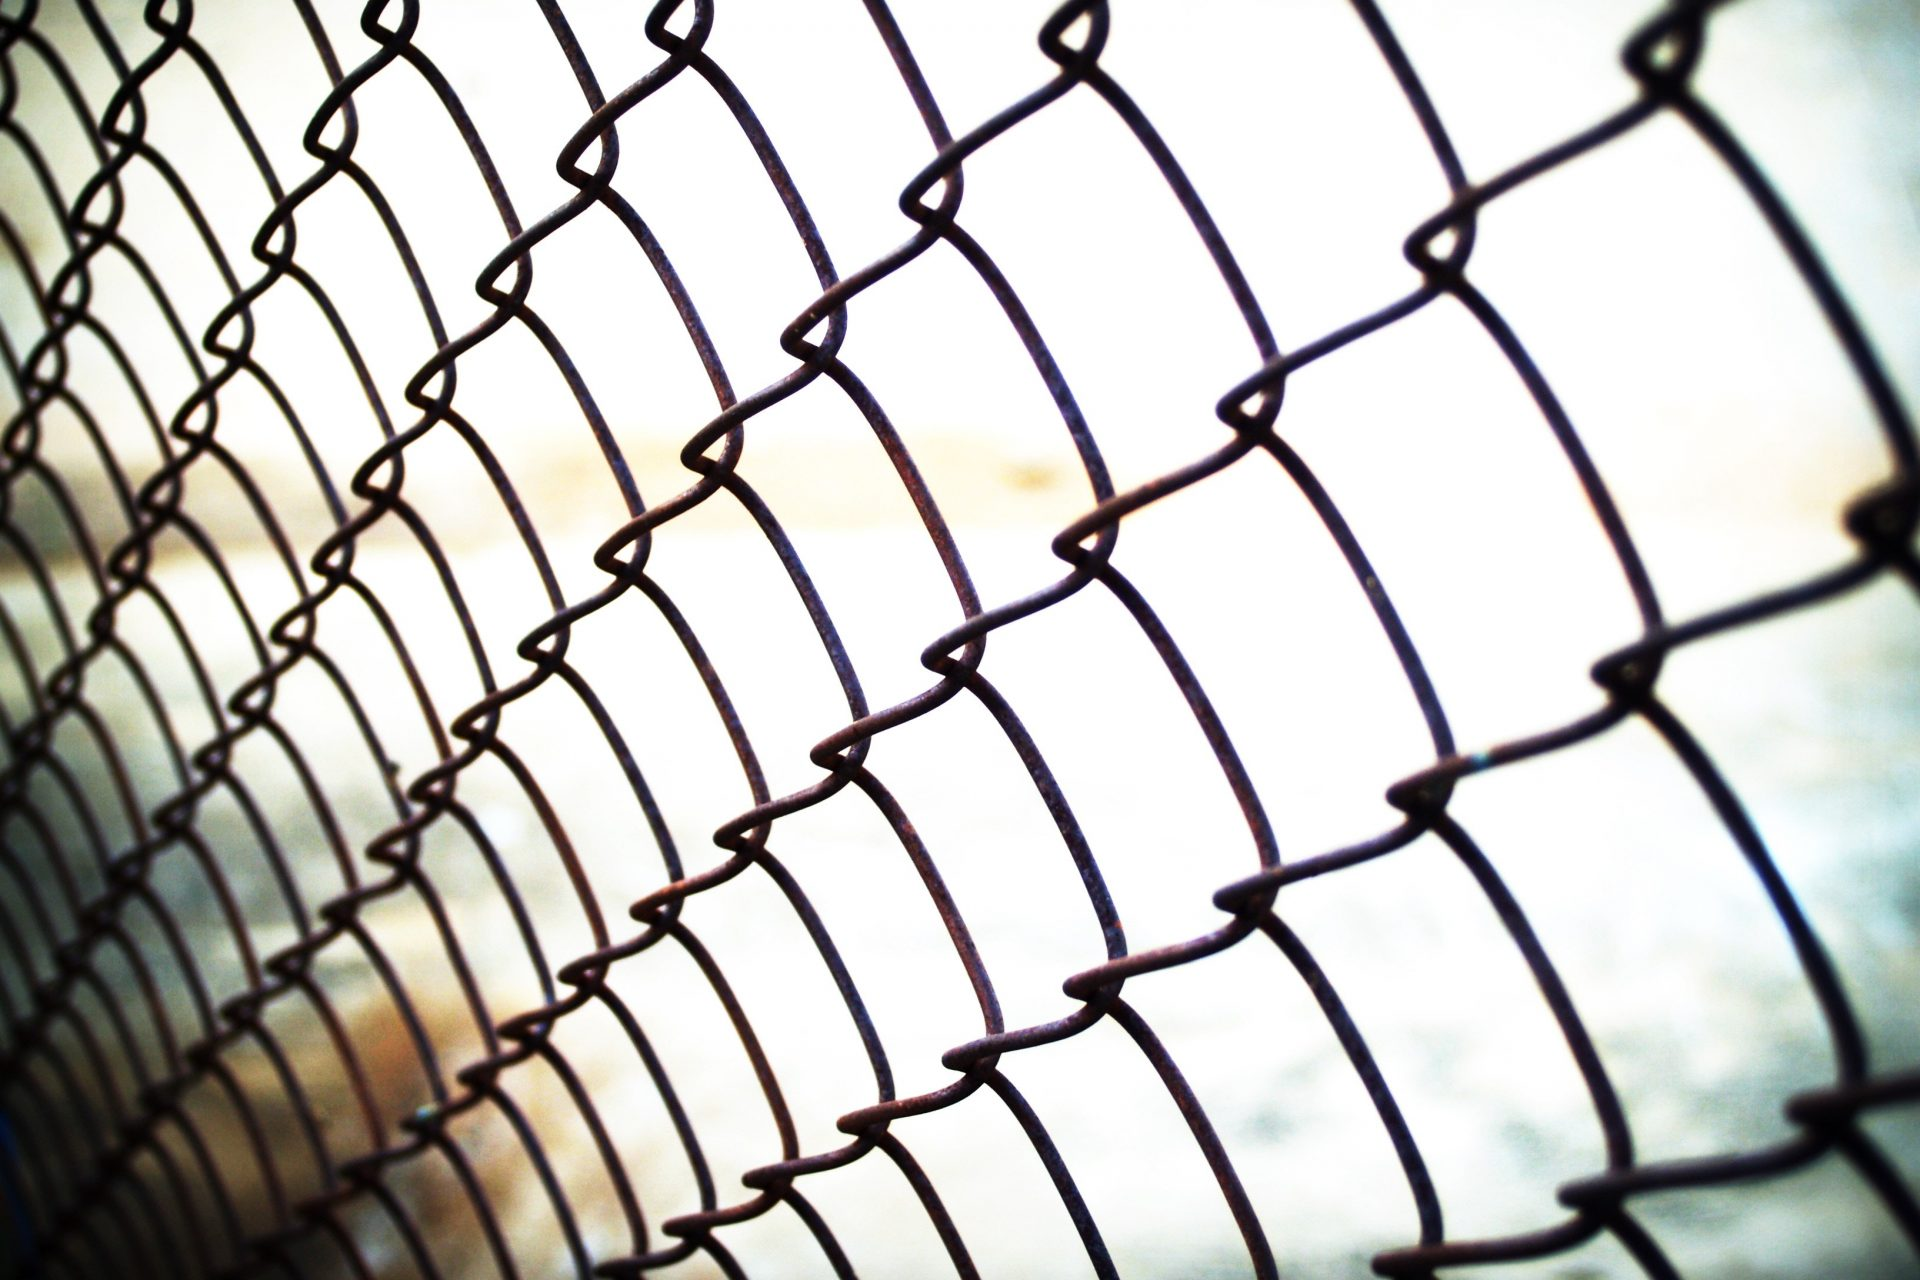 chain link fence west bend, west bend fence replacement, chain link fence repair west bend